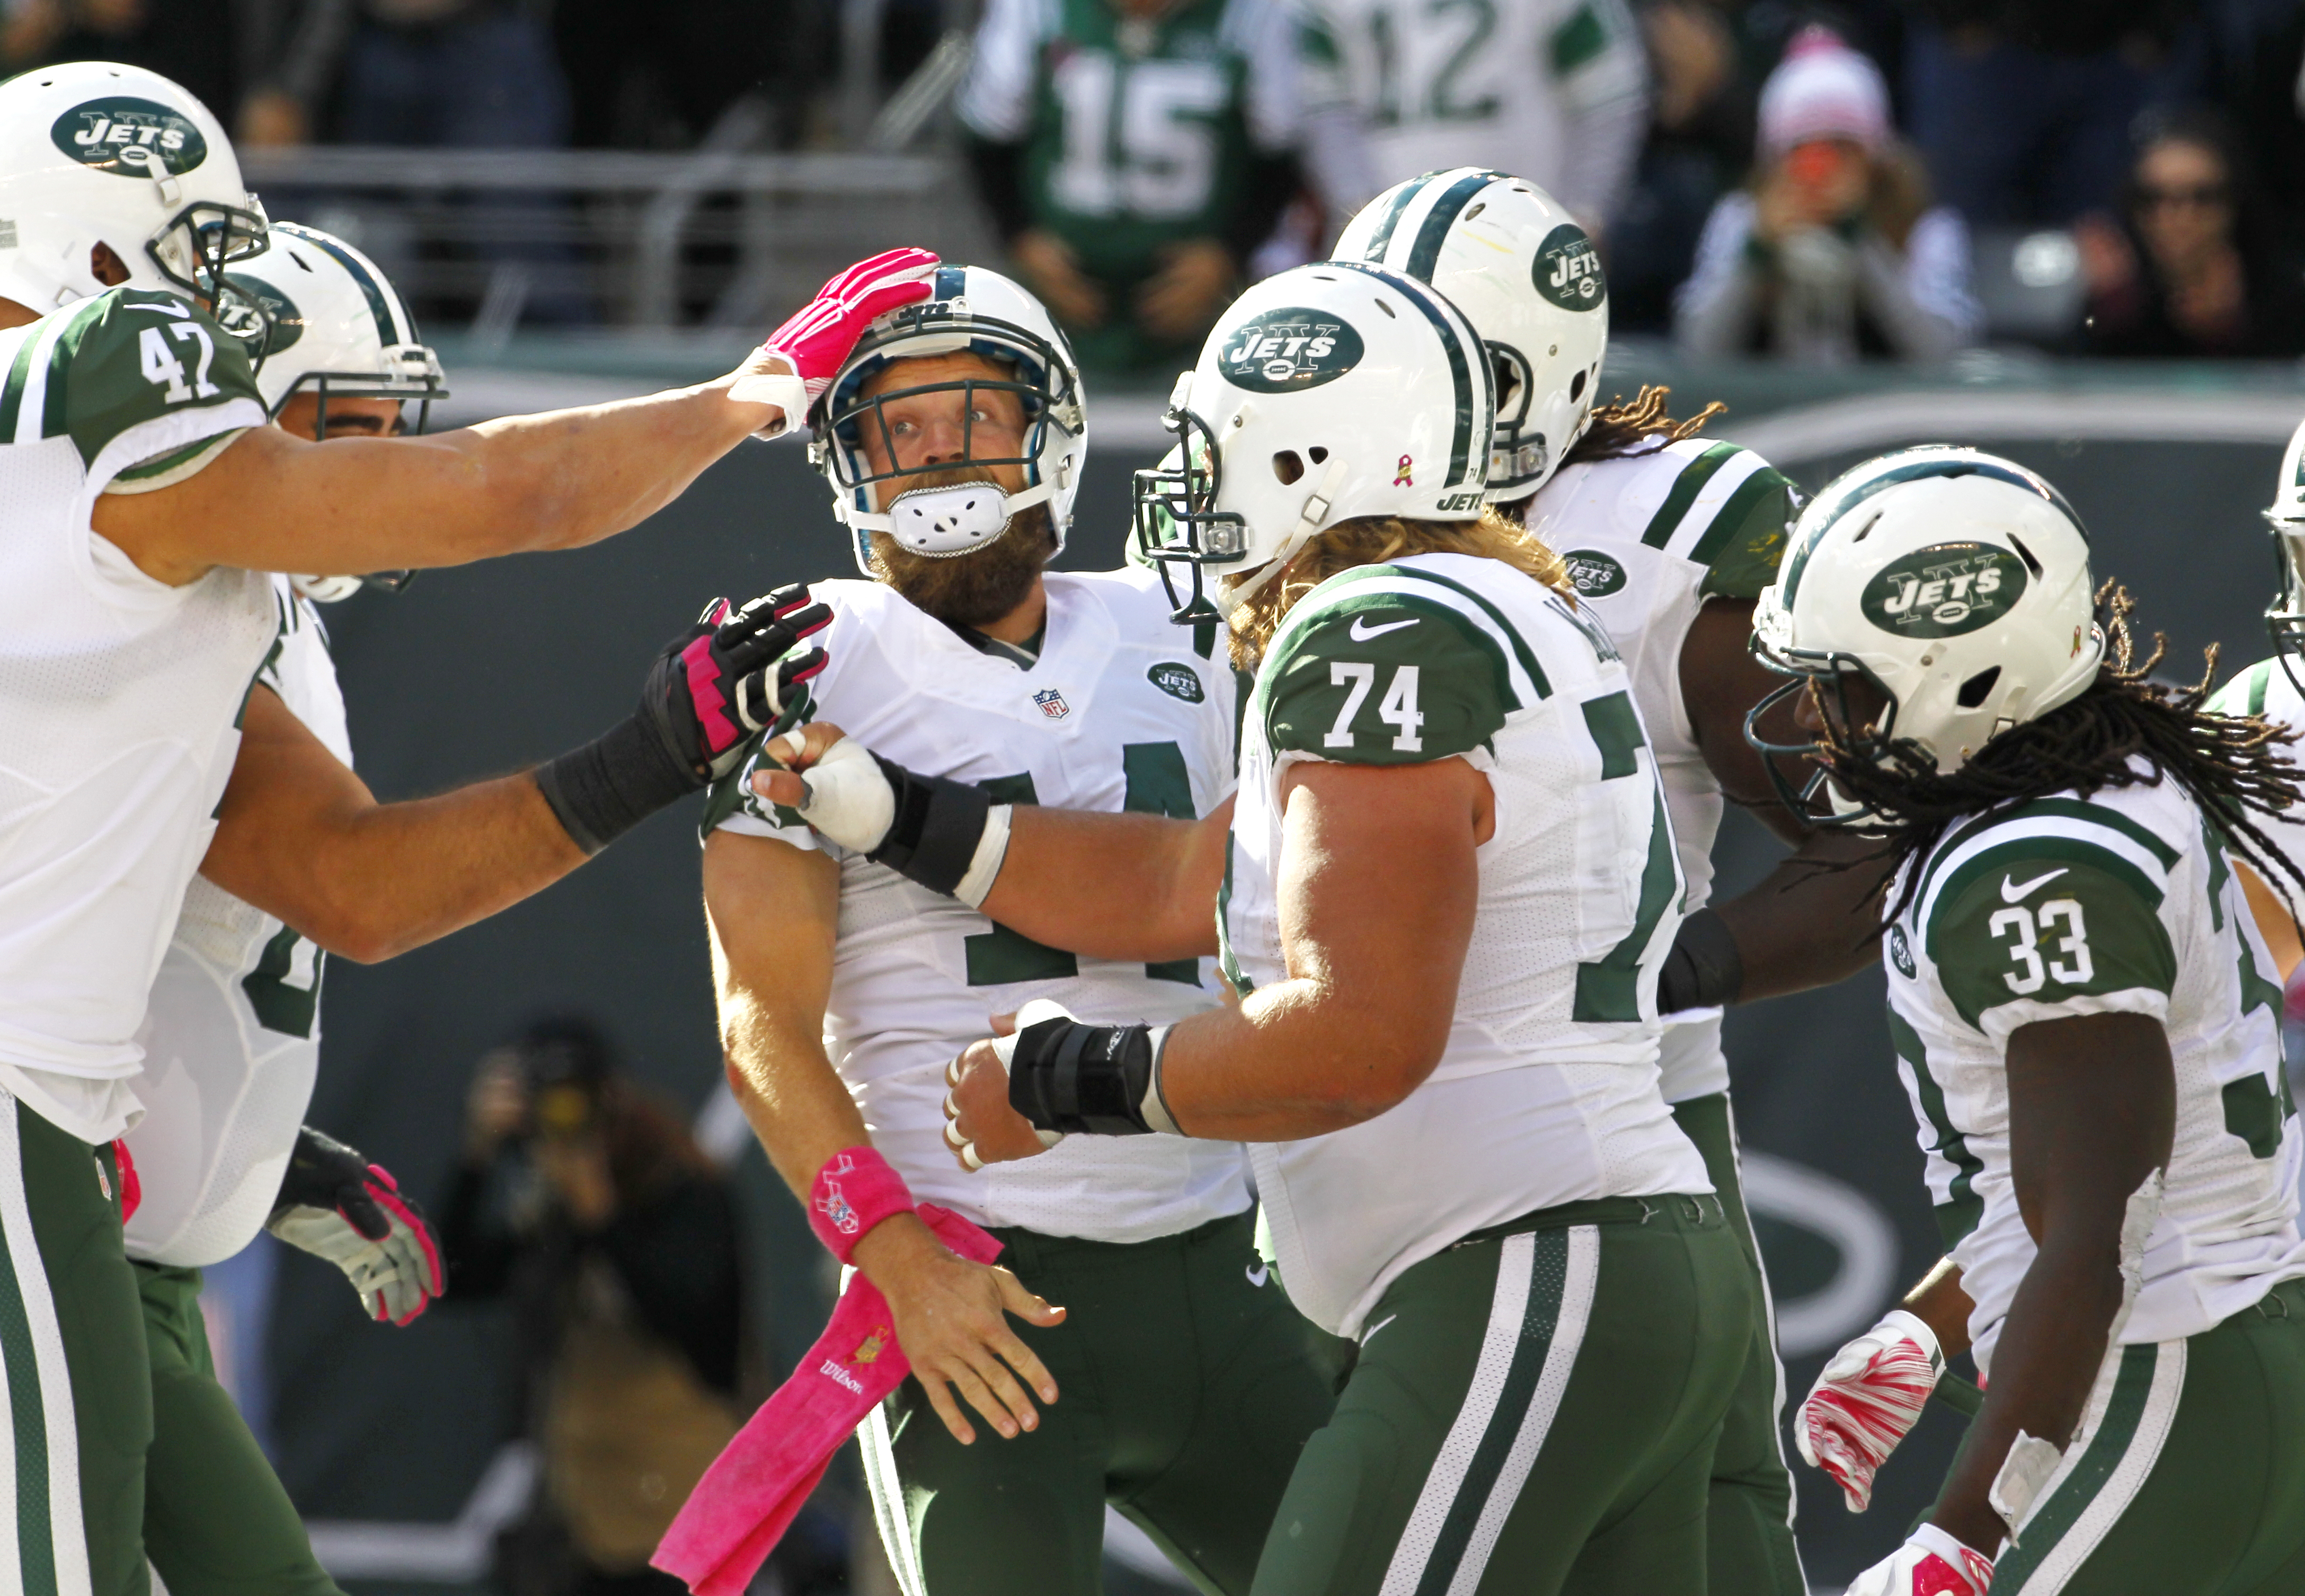 New York Jets quarterback Ryan Fitzpatrick, center left, is mobbed by teammates after scoring a touchdown run against the Washington Redskins during the second half of an NFL football game, Sunday, Oct. 18, 2015, in East Rutherford, N.J. (AP Photo/Gary He